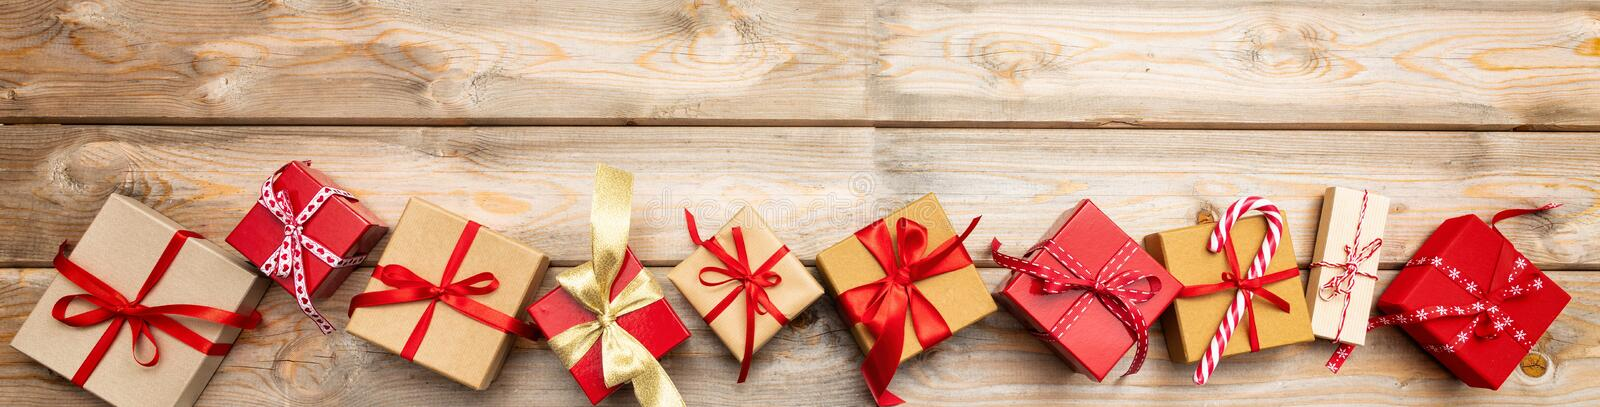 Christmas gift boxes on wooden background, banner, copy space, top view royalty free stock photography